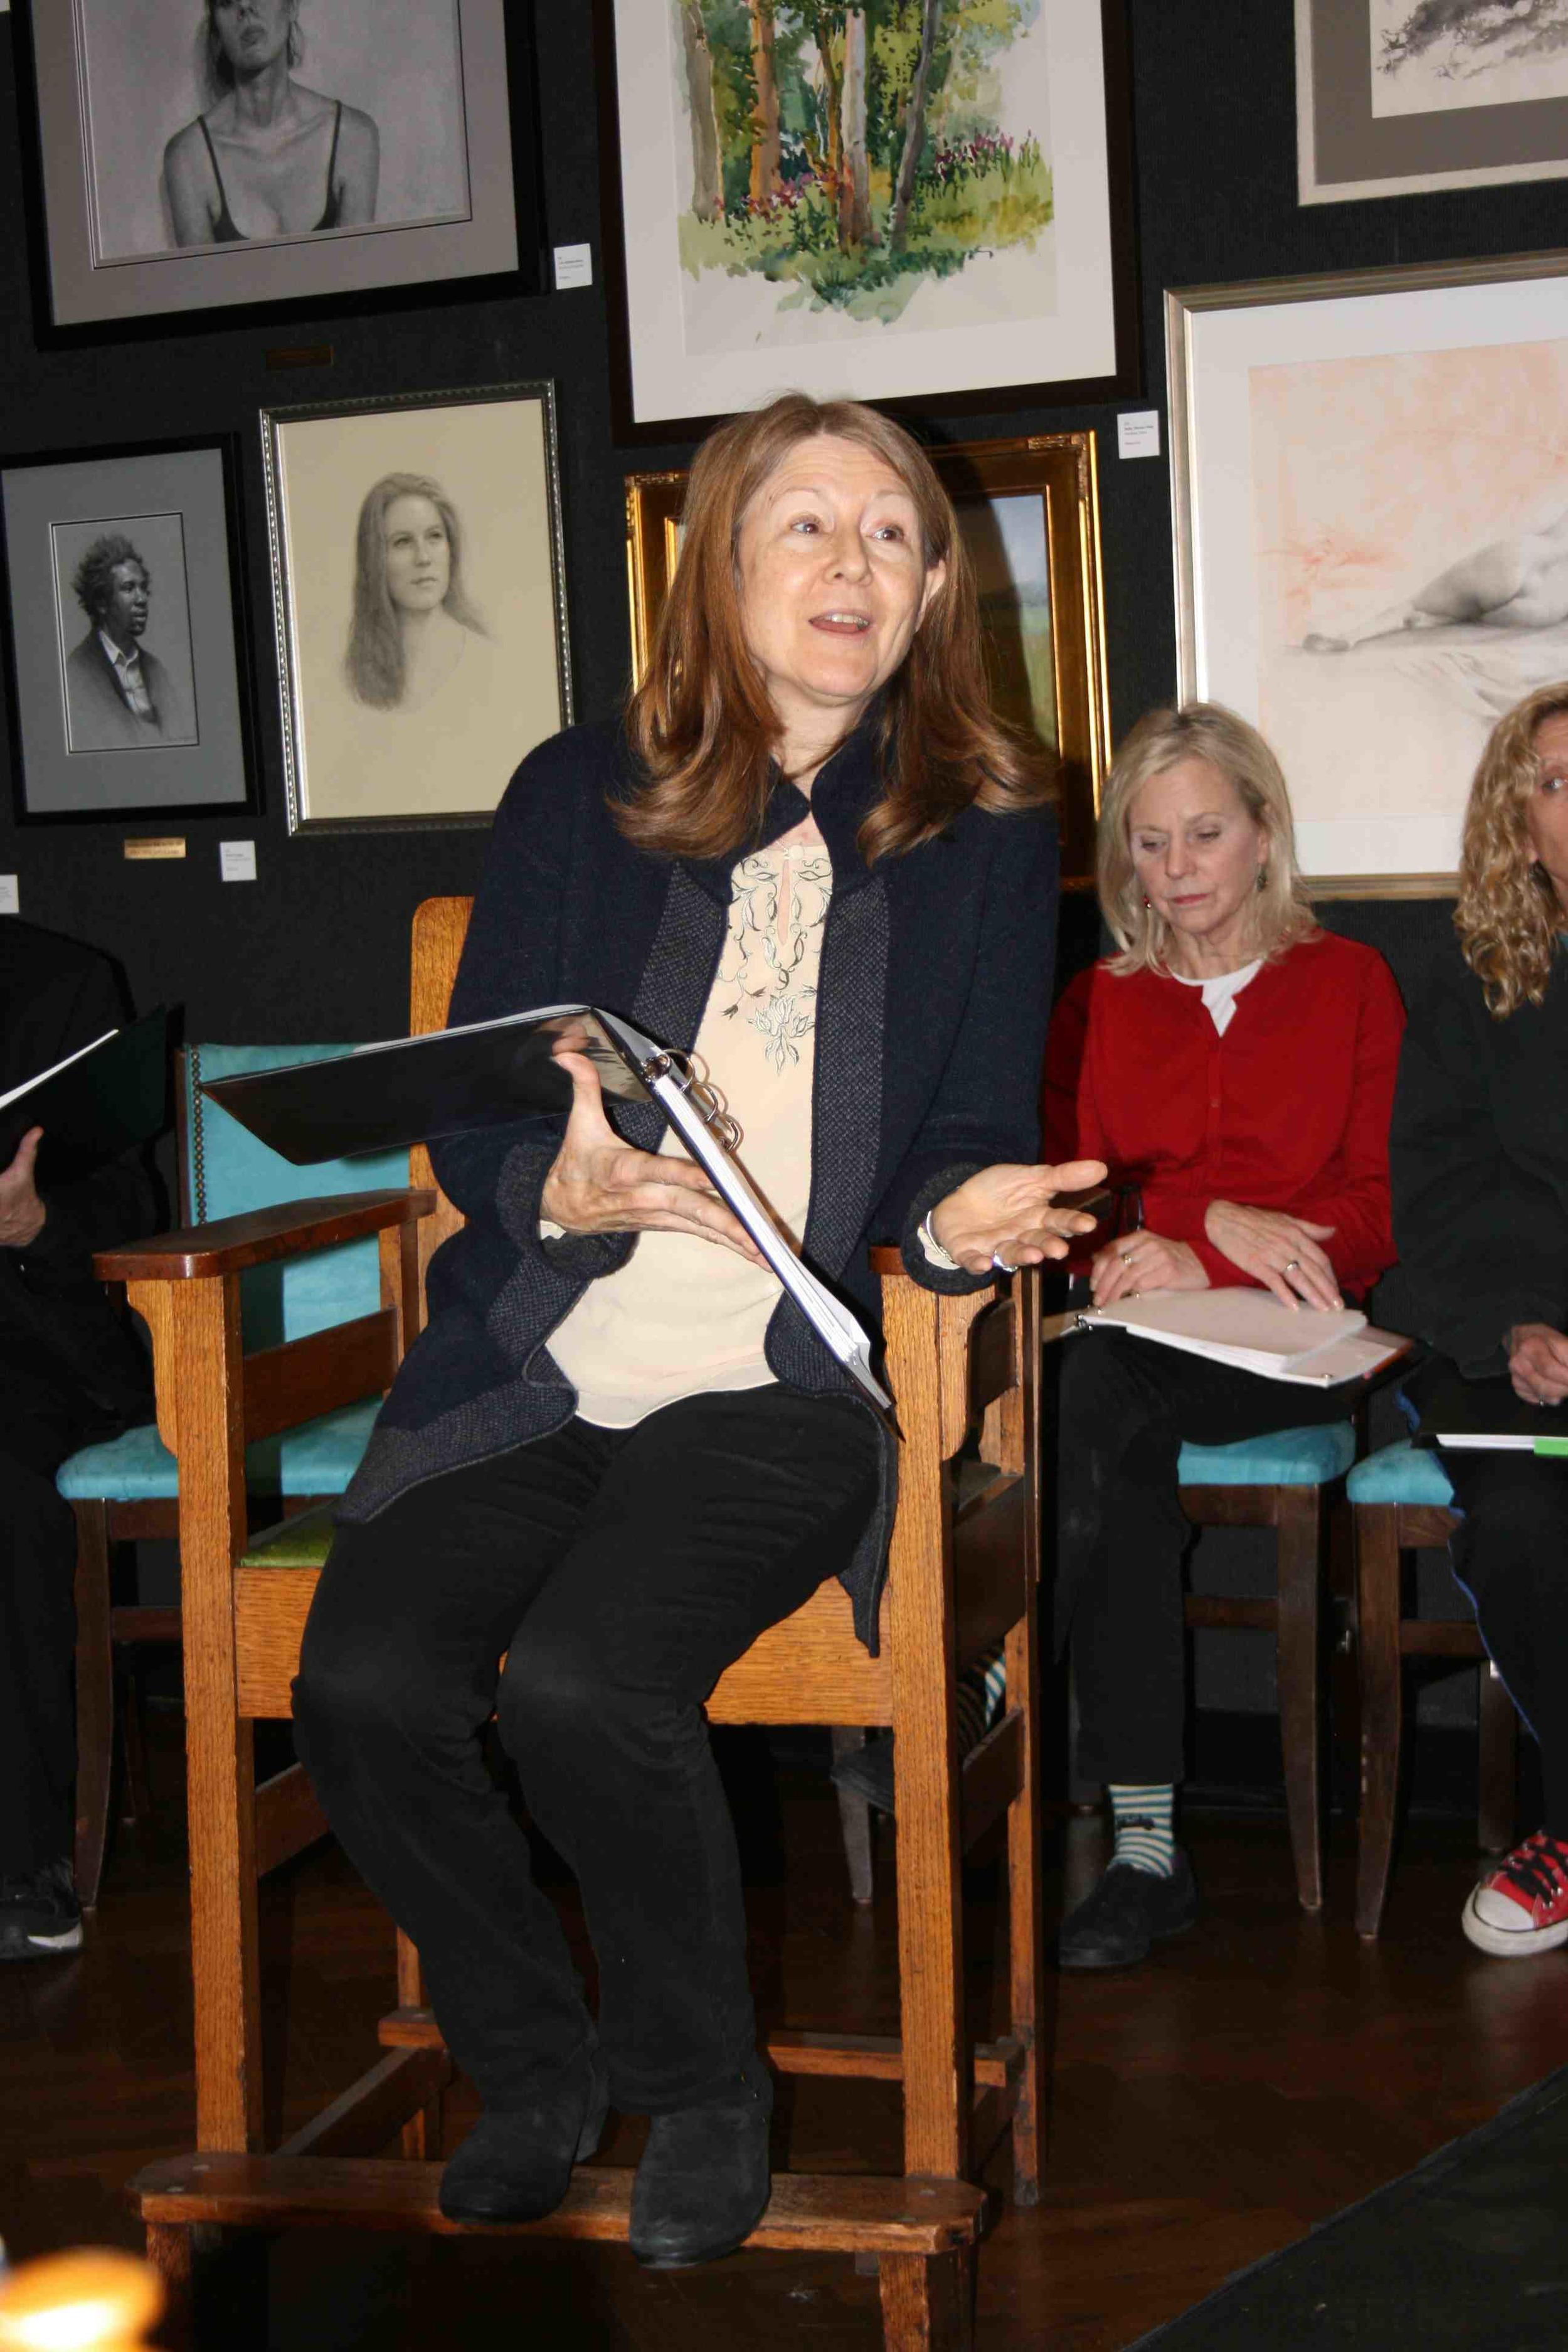 """Rehearsing """"Judith Shakespeare Has Her Say"""" : Mia Dillon, Carolyn Marble, and Katie Sparer. Dec. 15, 2014 at The National Arts Club. Photo by Mark Graham."""